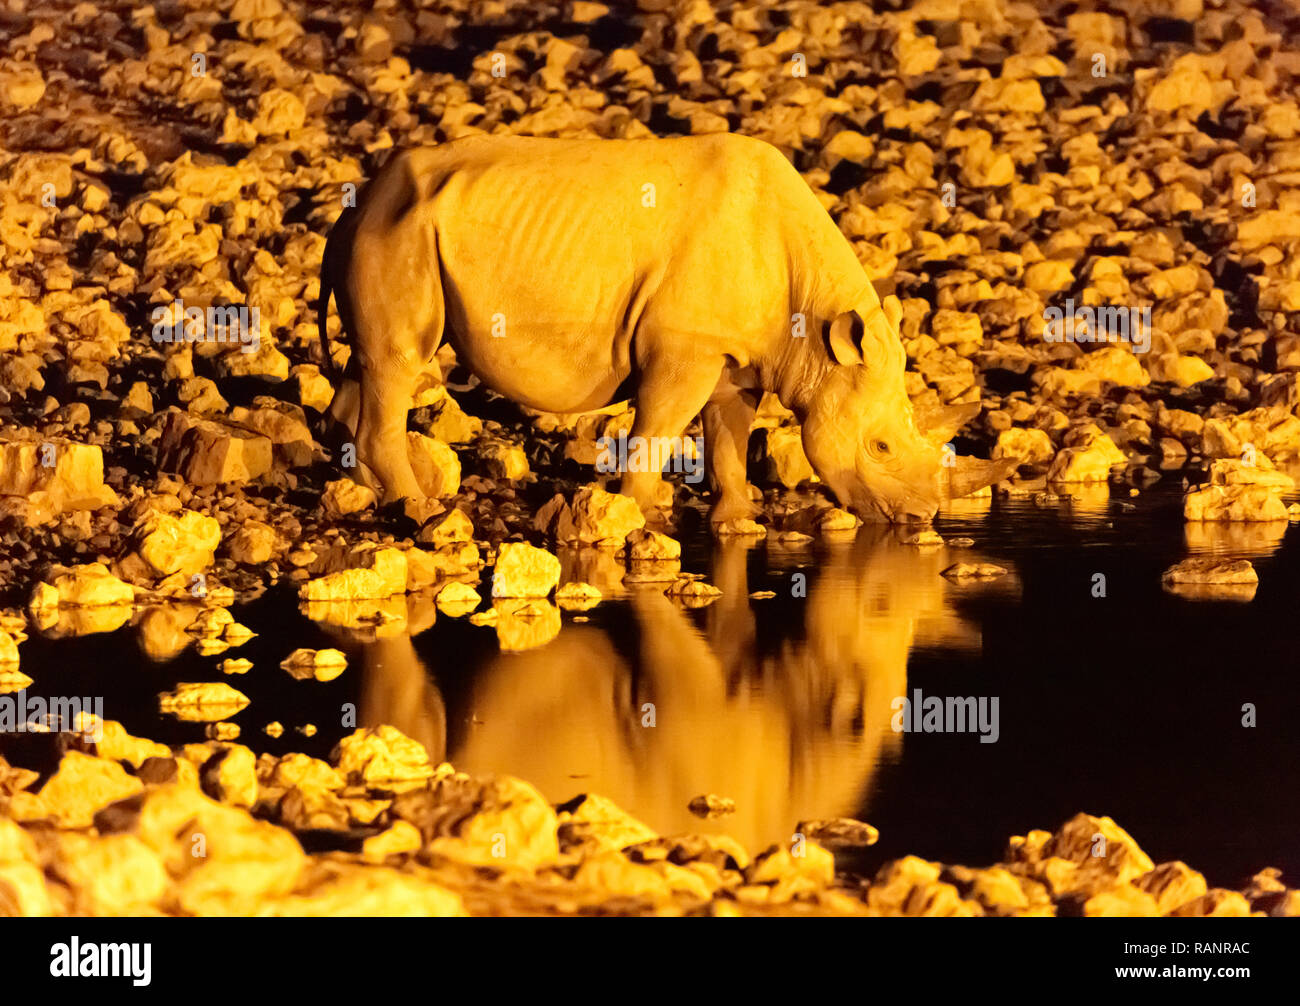 black-rhino-diceros-bicornis-african-wildlife-drinking-at-a-waterhole-at-night-okaukuego-camp-etosha-national-park-namibia-africa-RANRAC.jpg